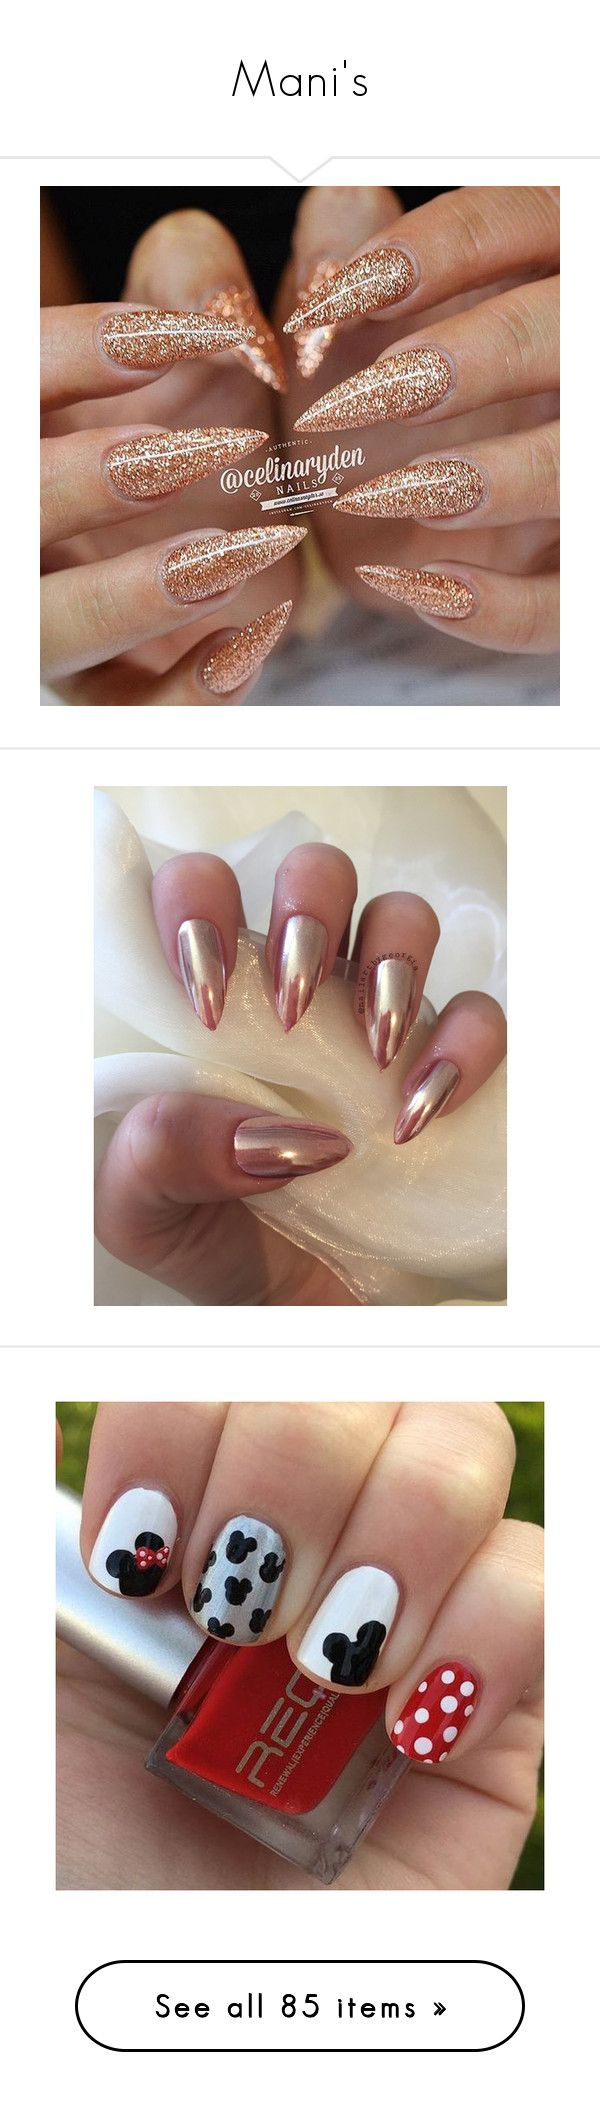 """""""Mani's"""" by gorgeouslor ❤ liked on Polyvore featuring beauty products, nail care, nail polish, nails, nail treatments, beauty, makeup, unhas, disney and fillers"""